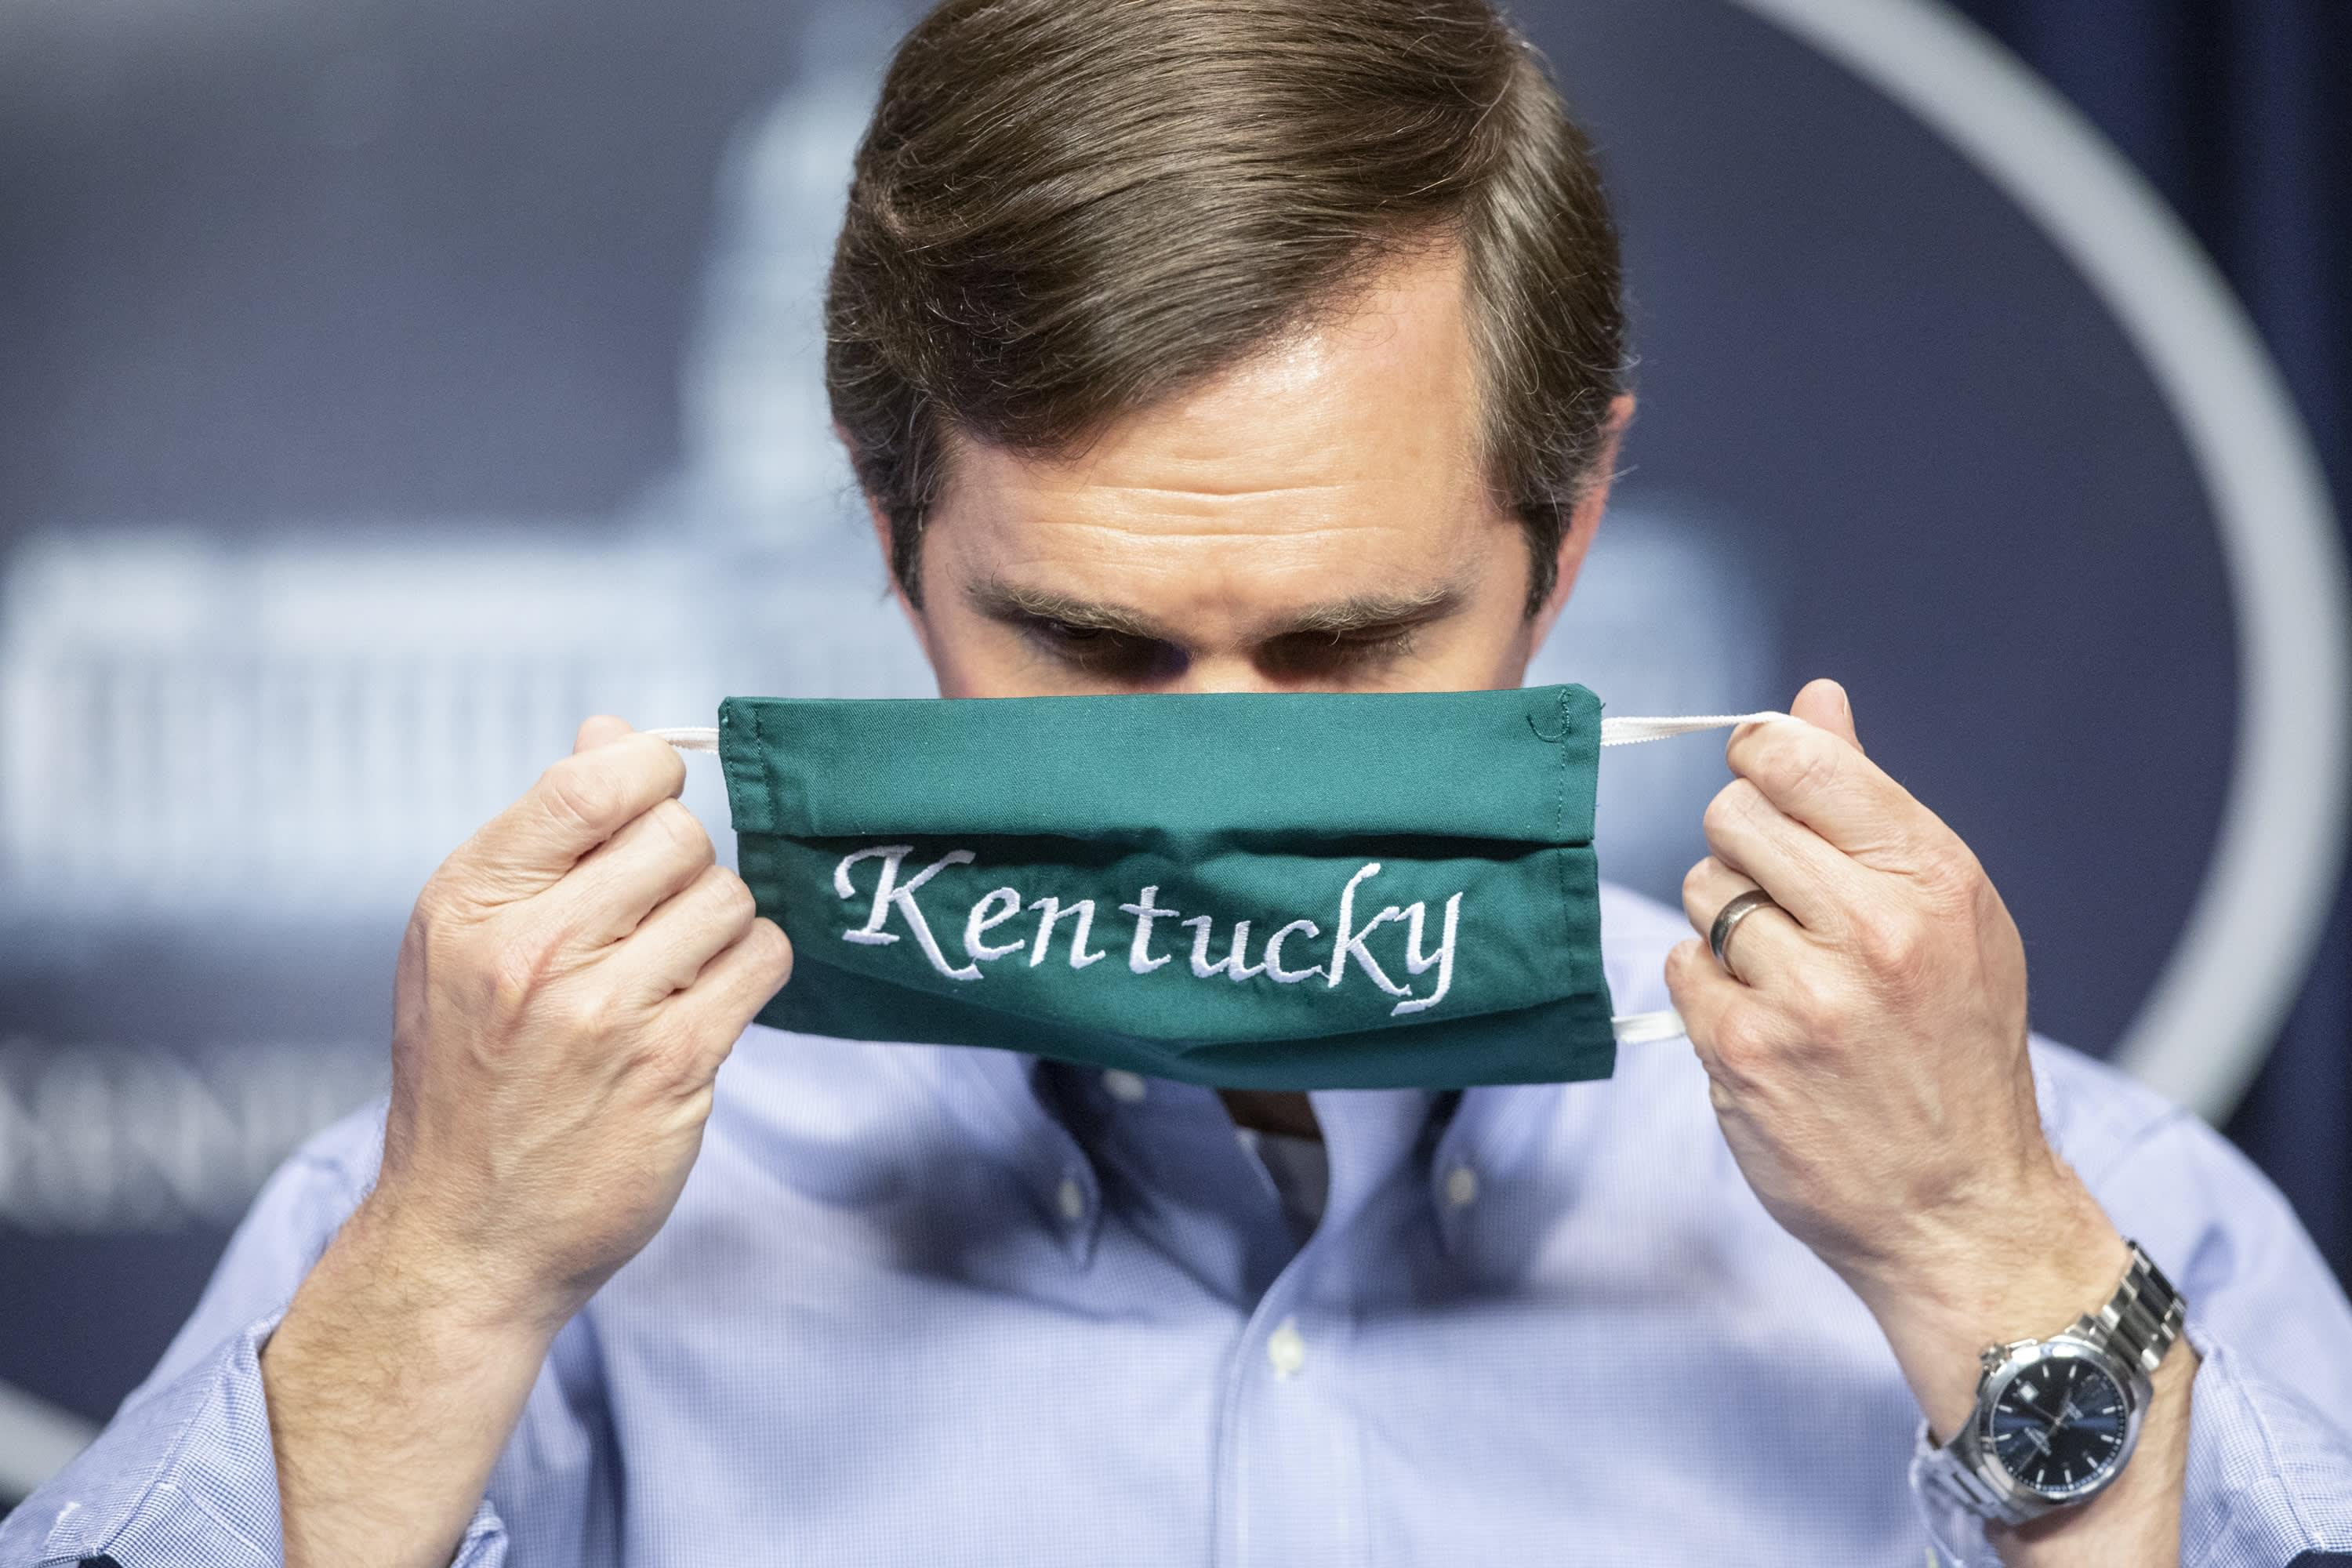 As COVID-19 surges, Gov. Andy Beshear reluctant to again impose masks. What's changed?